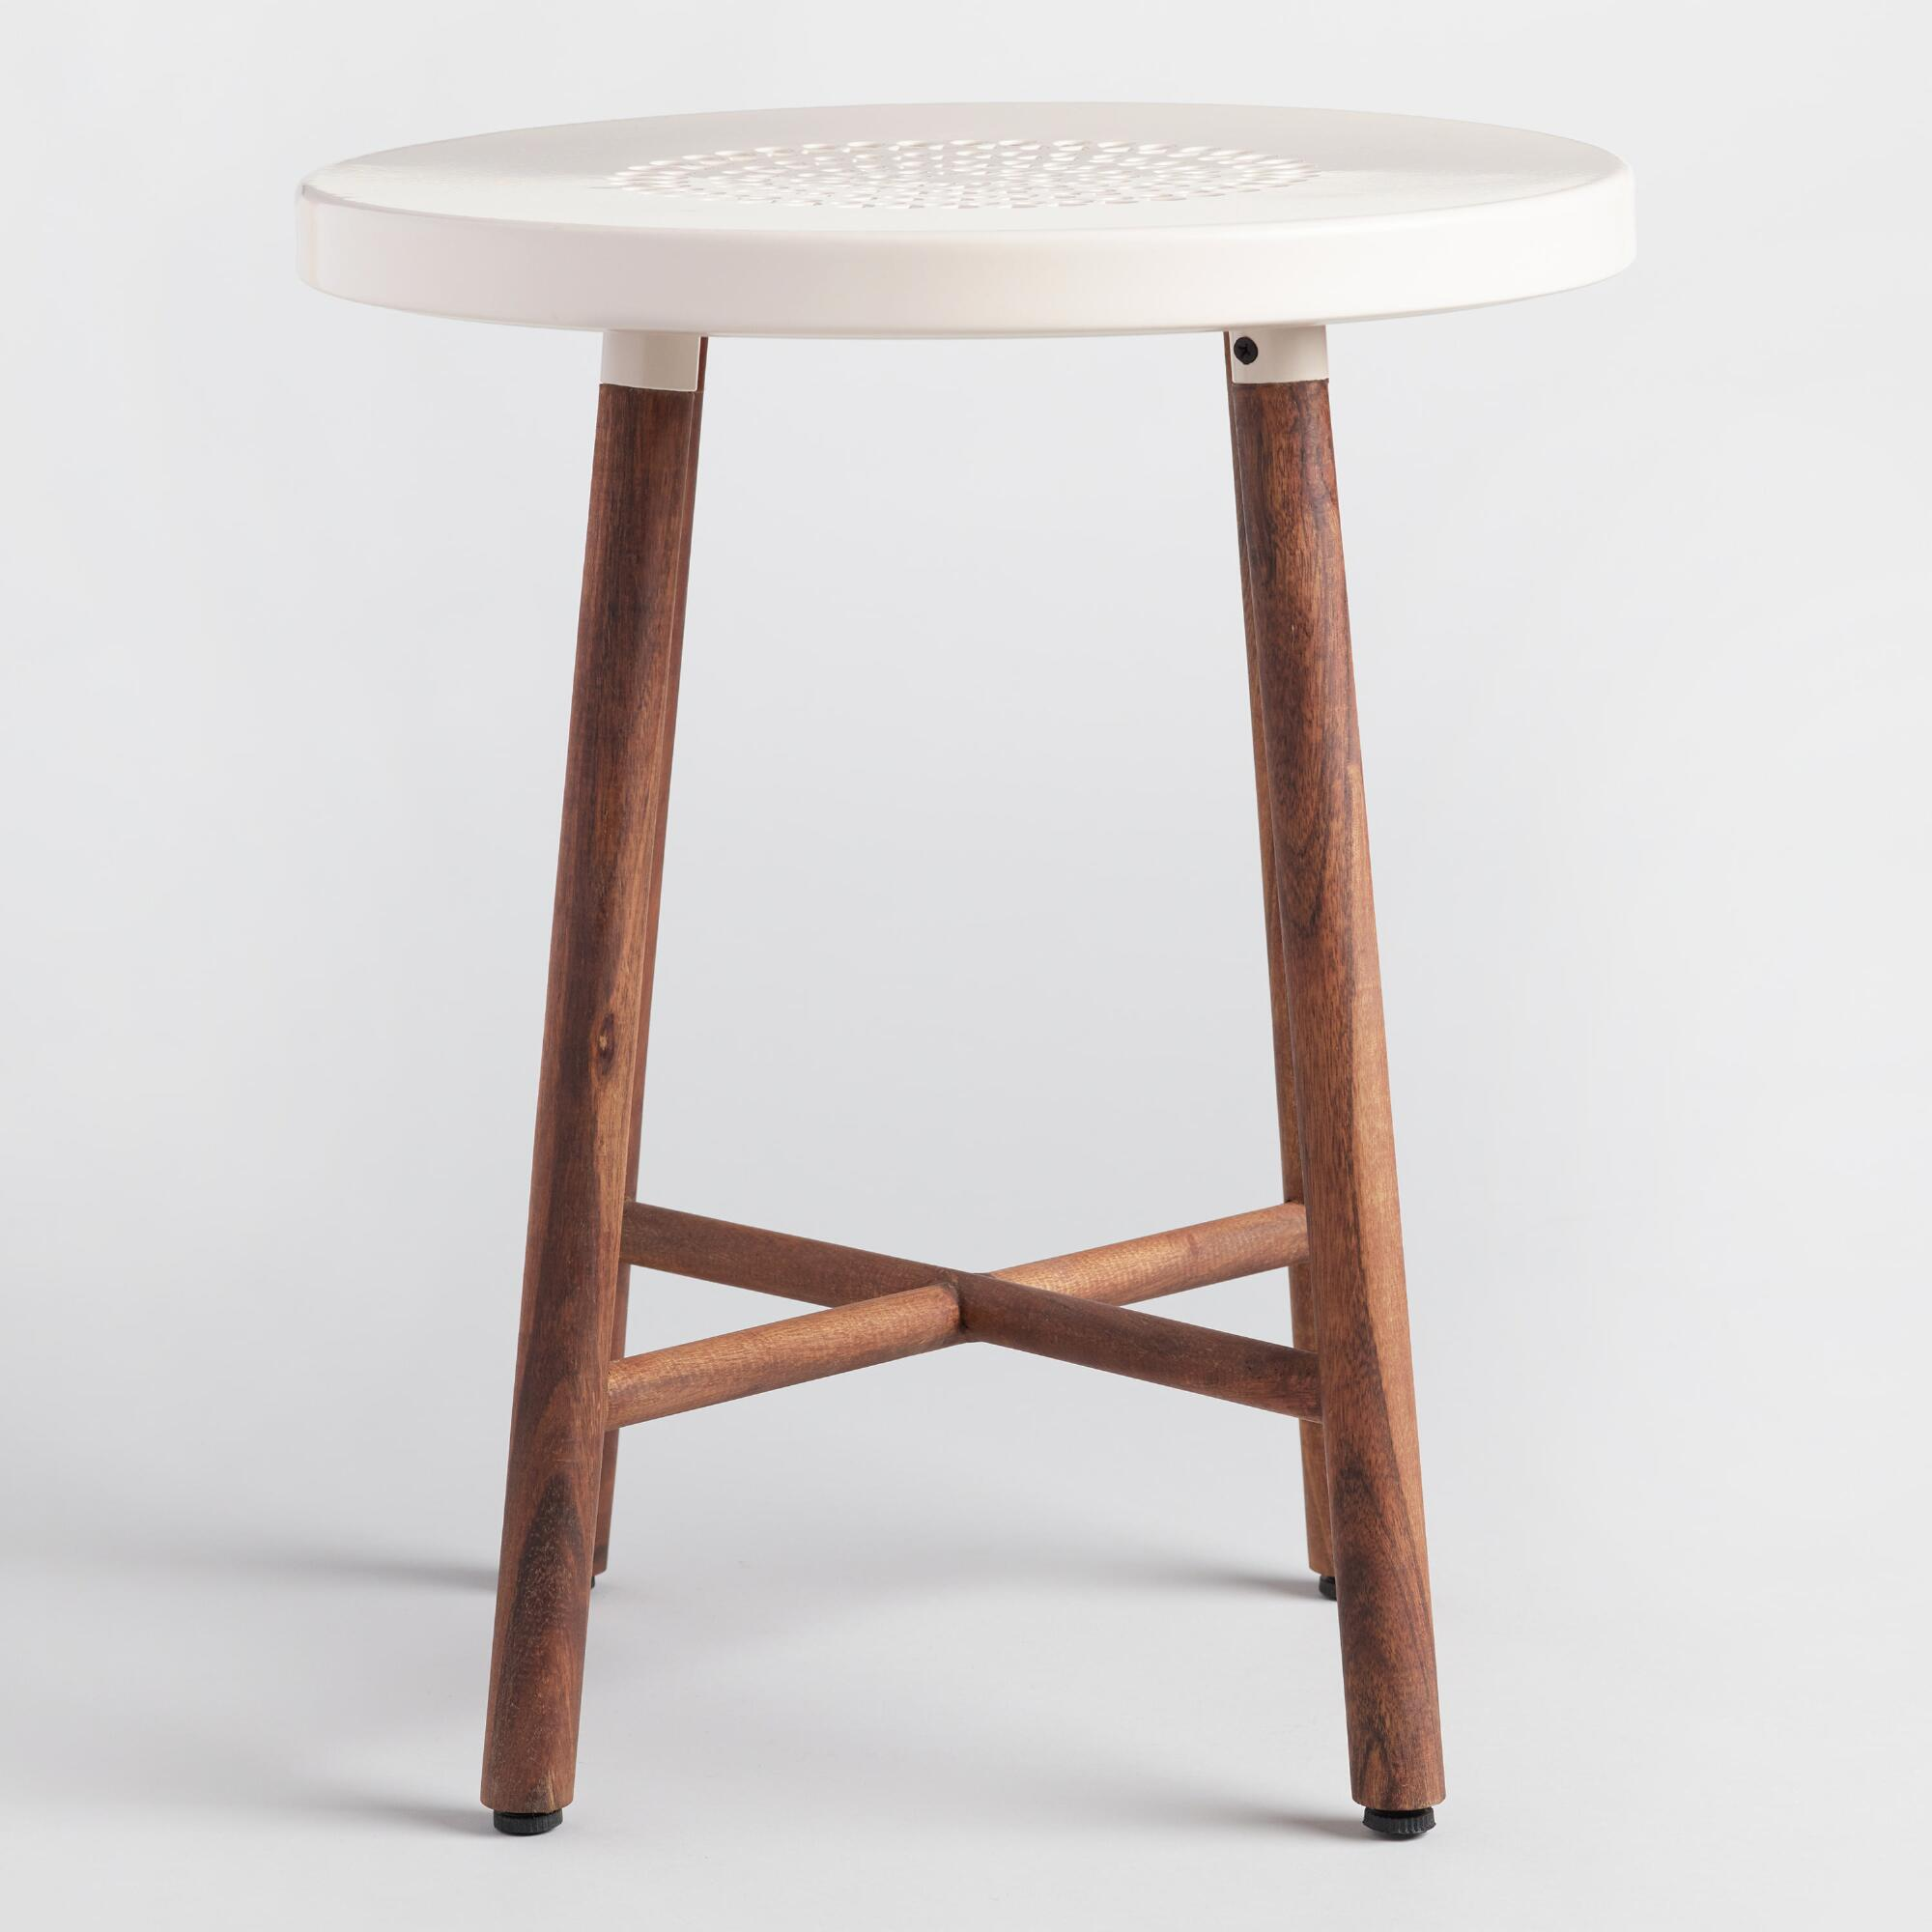 Cafe tables and chairs png - White Metal And Wood Tristan Stool